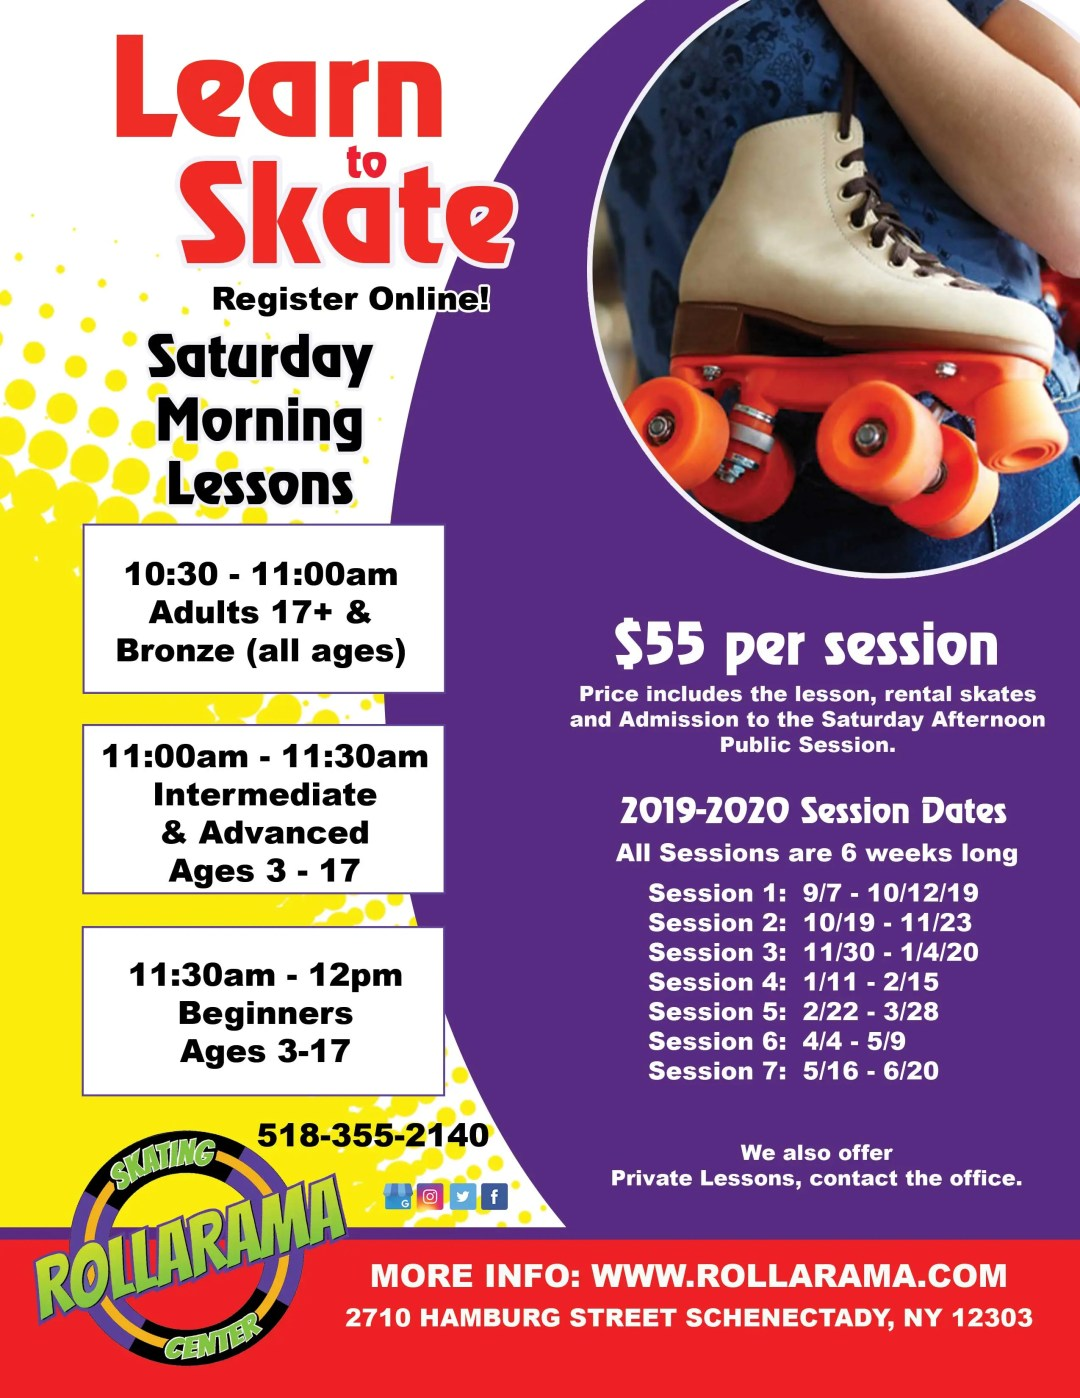 Learn to Skate Classes at Rollarama